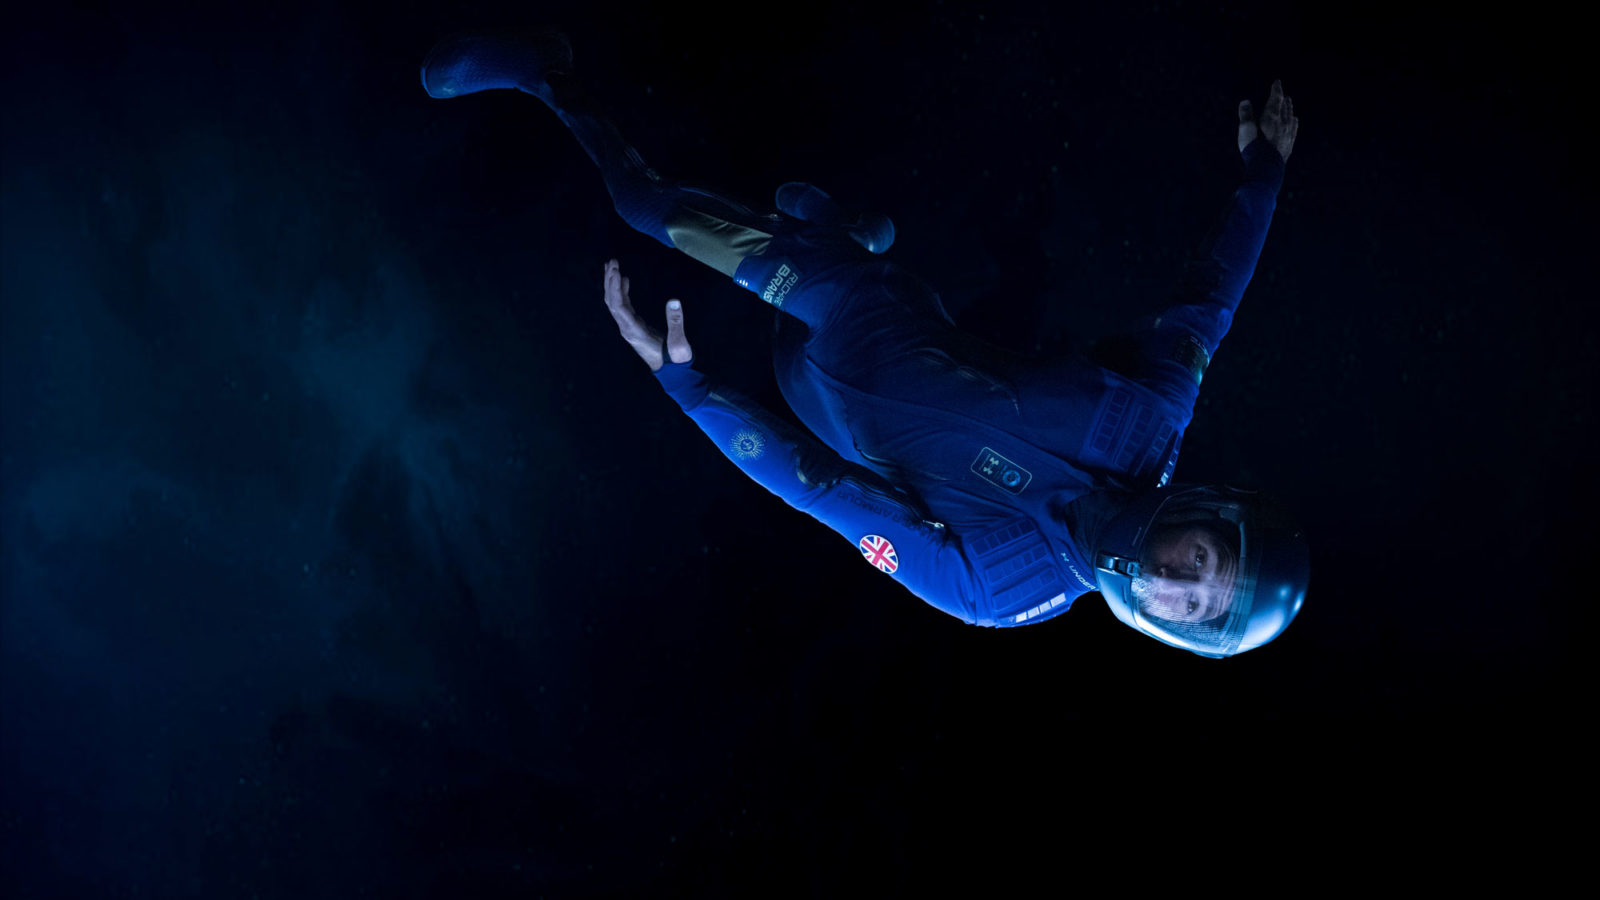 The unveil event in New York showcased the spacewear system on a zero gravity. © Virgin Galactic